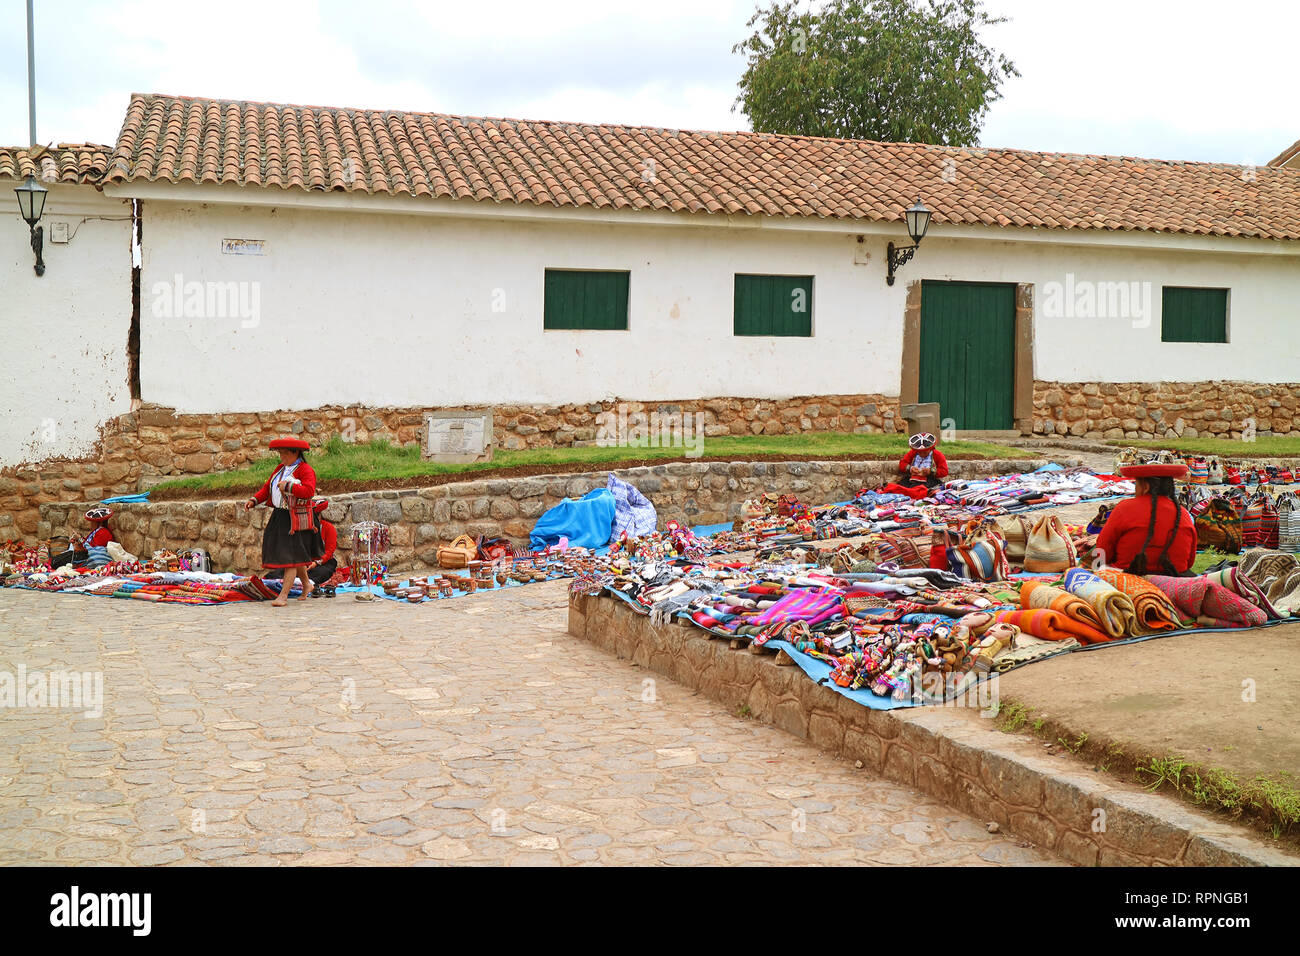 Local People Walking at Traditional Market at the Hilltop Town Plaza of Chinchero, Cuzco, Peru - Stock Image